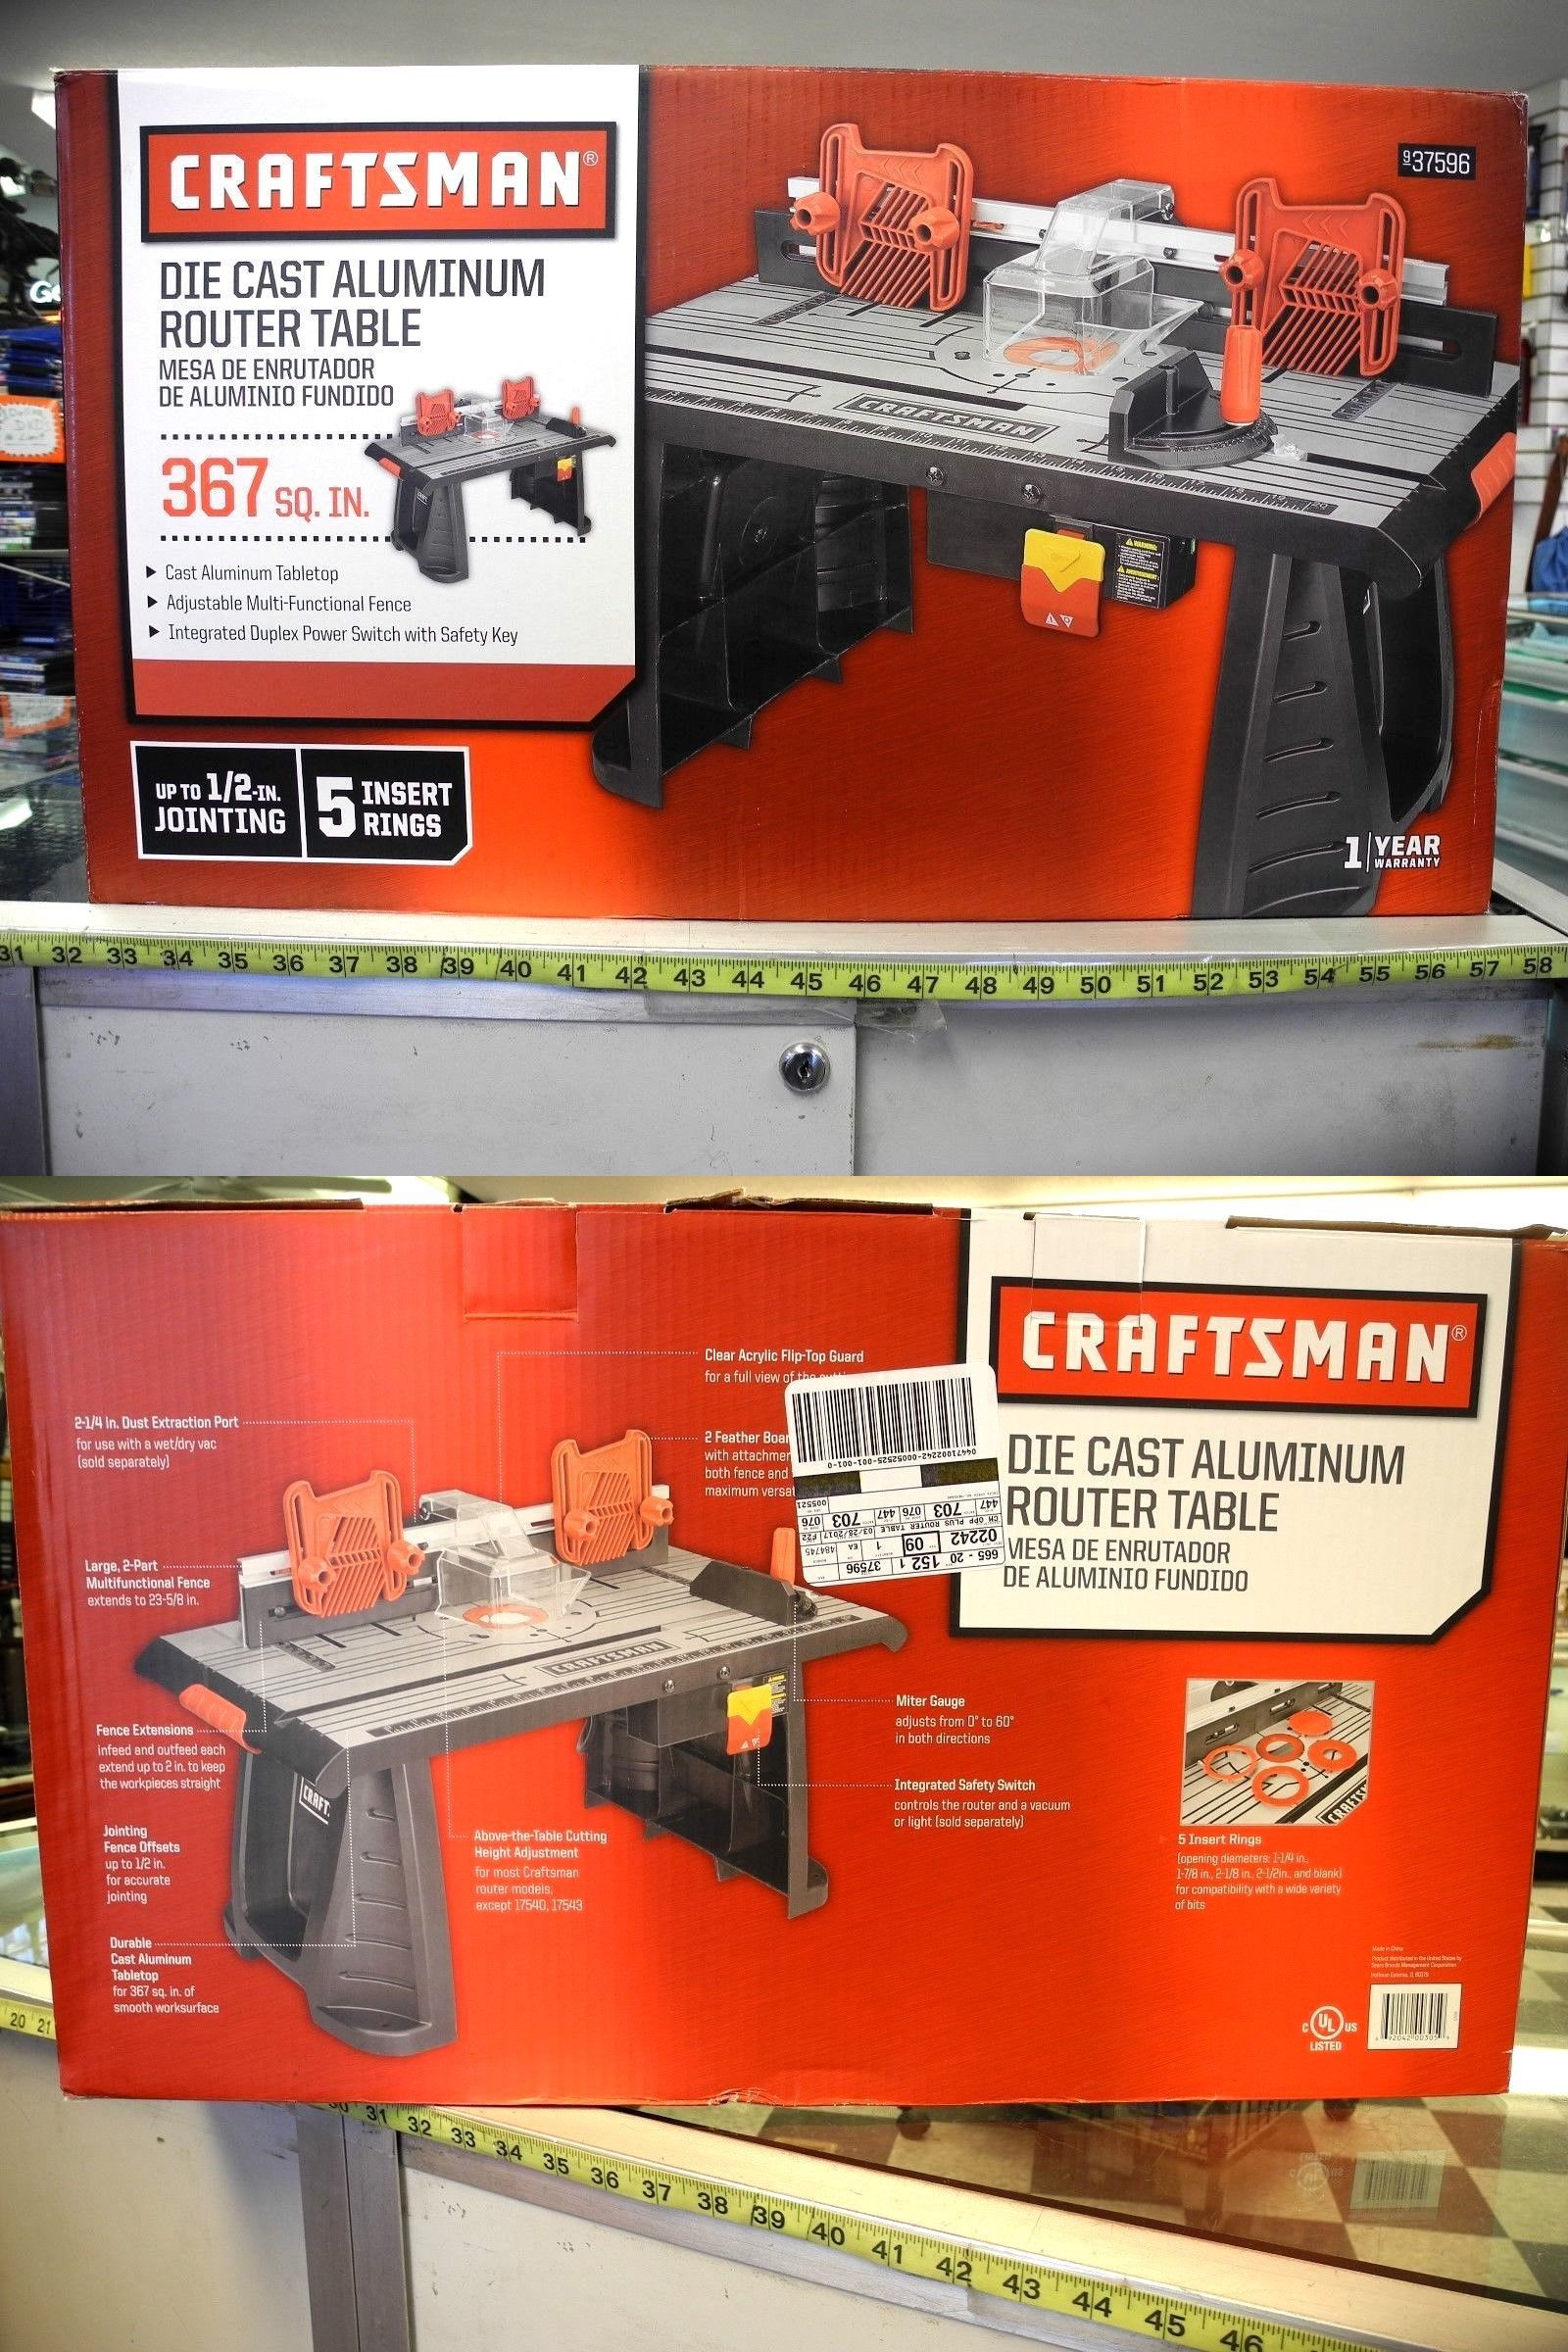 Router tables 75680 craftsman die cast aluminum router table 937596 router tables 75680 craftsman die cast aluminum router table 937596 new buy it keyboard keysfo Choice Image